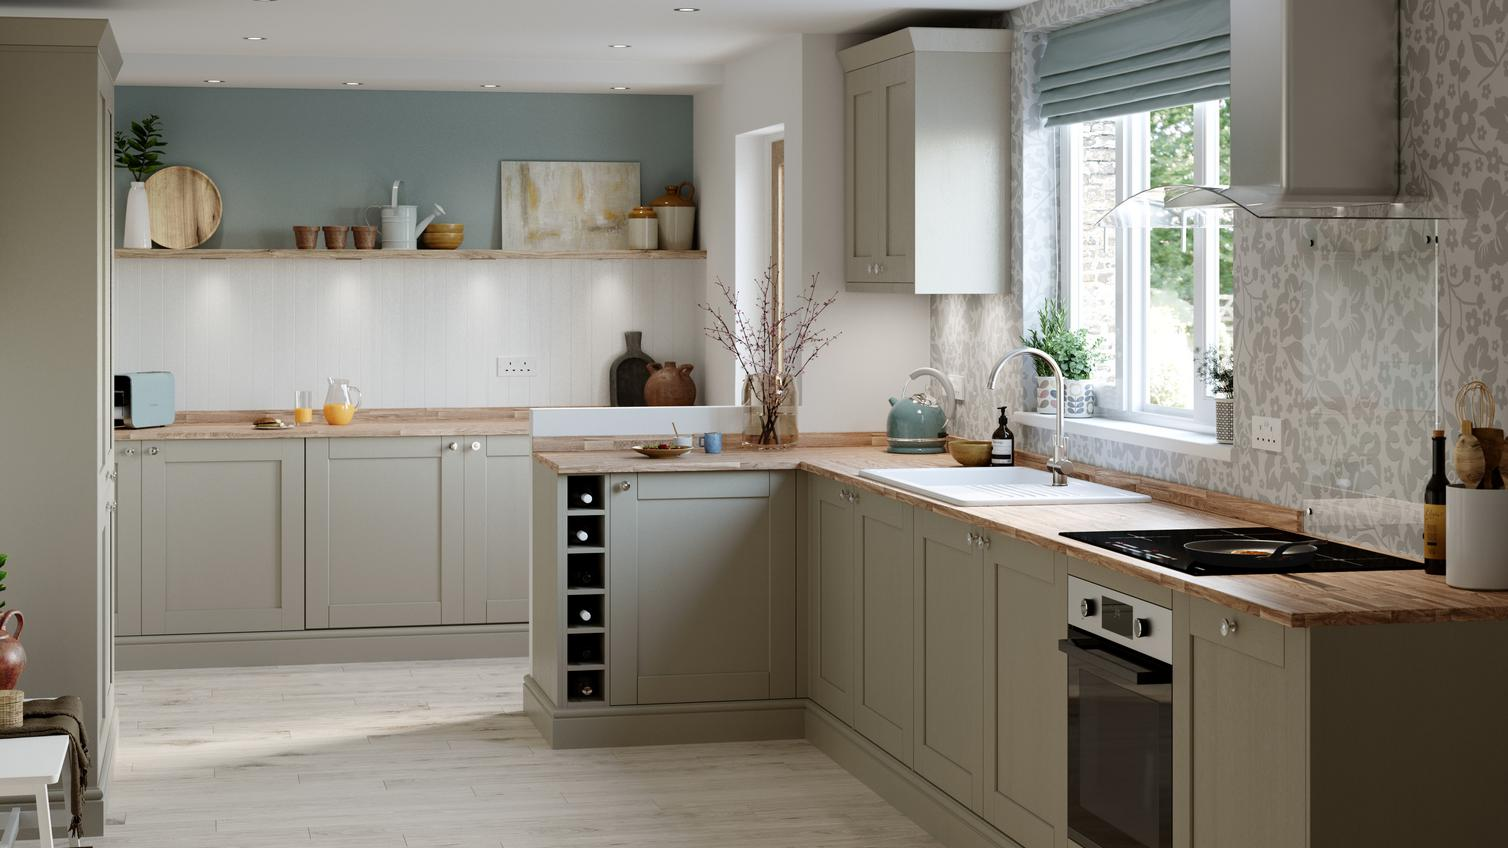 Fairford Pebble Kitchen Fitted Kitchens Howdens